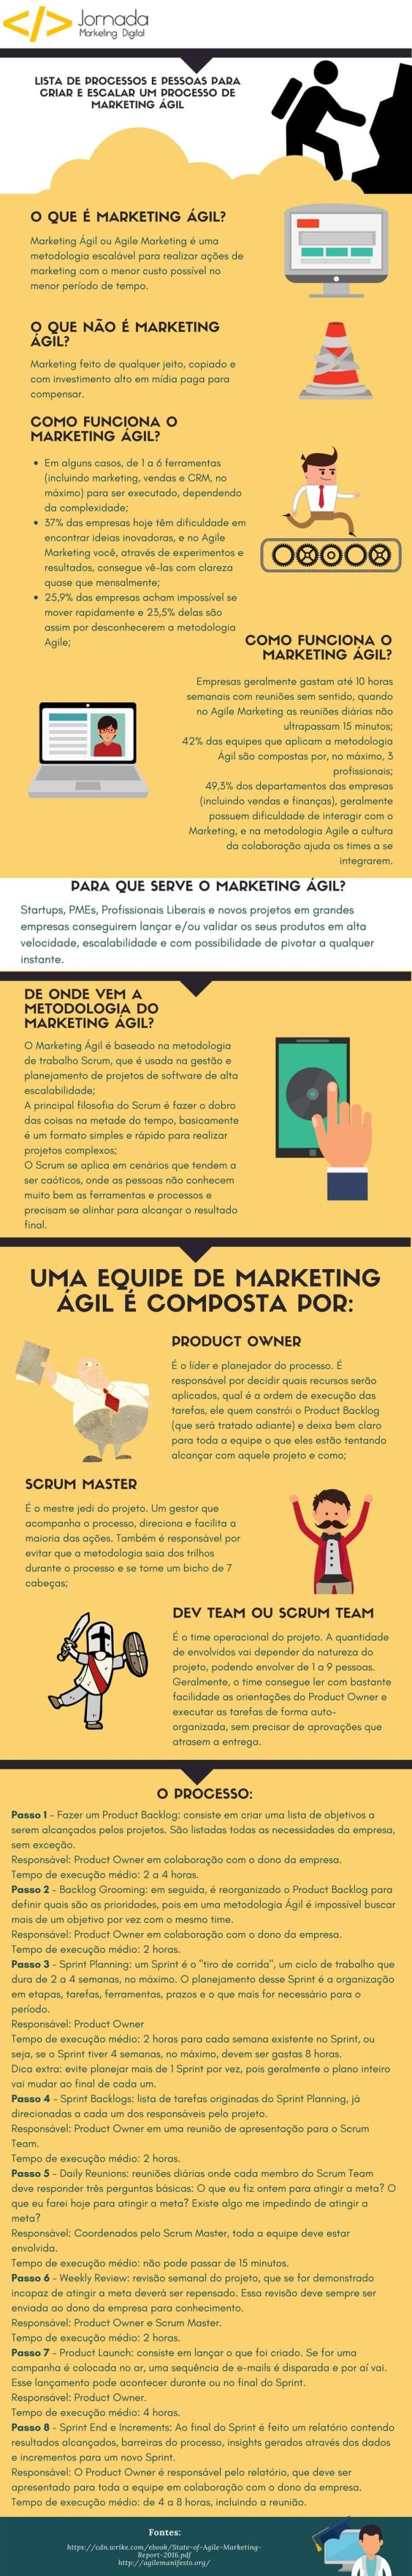 Infográfico de Marketing Ágil para Startups